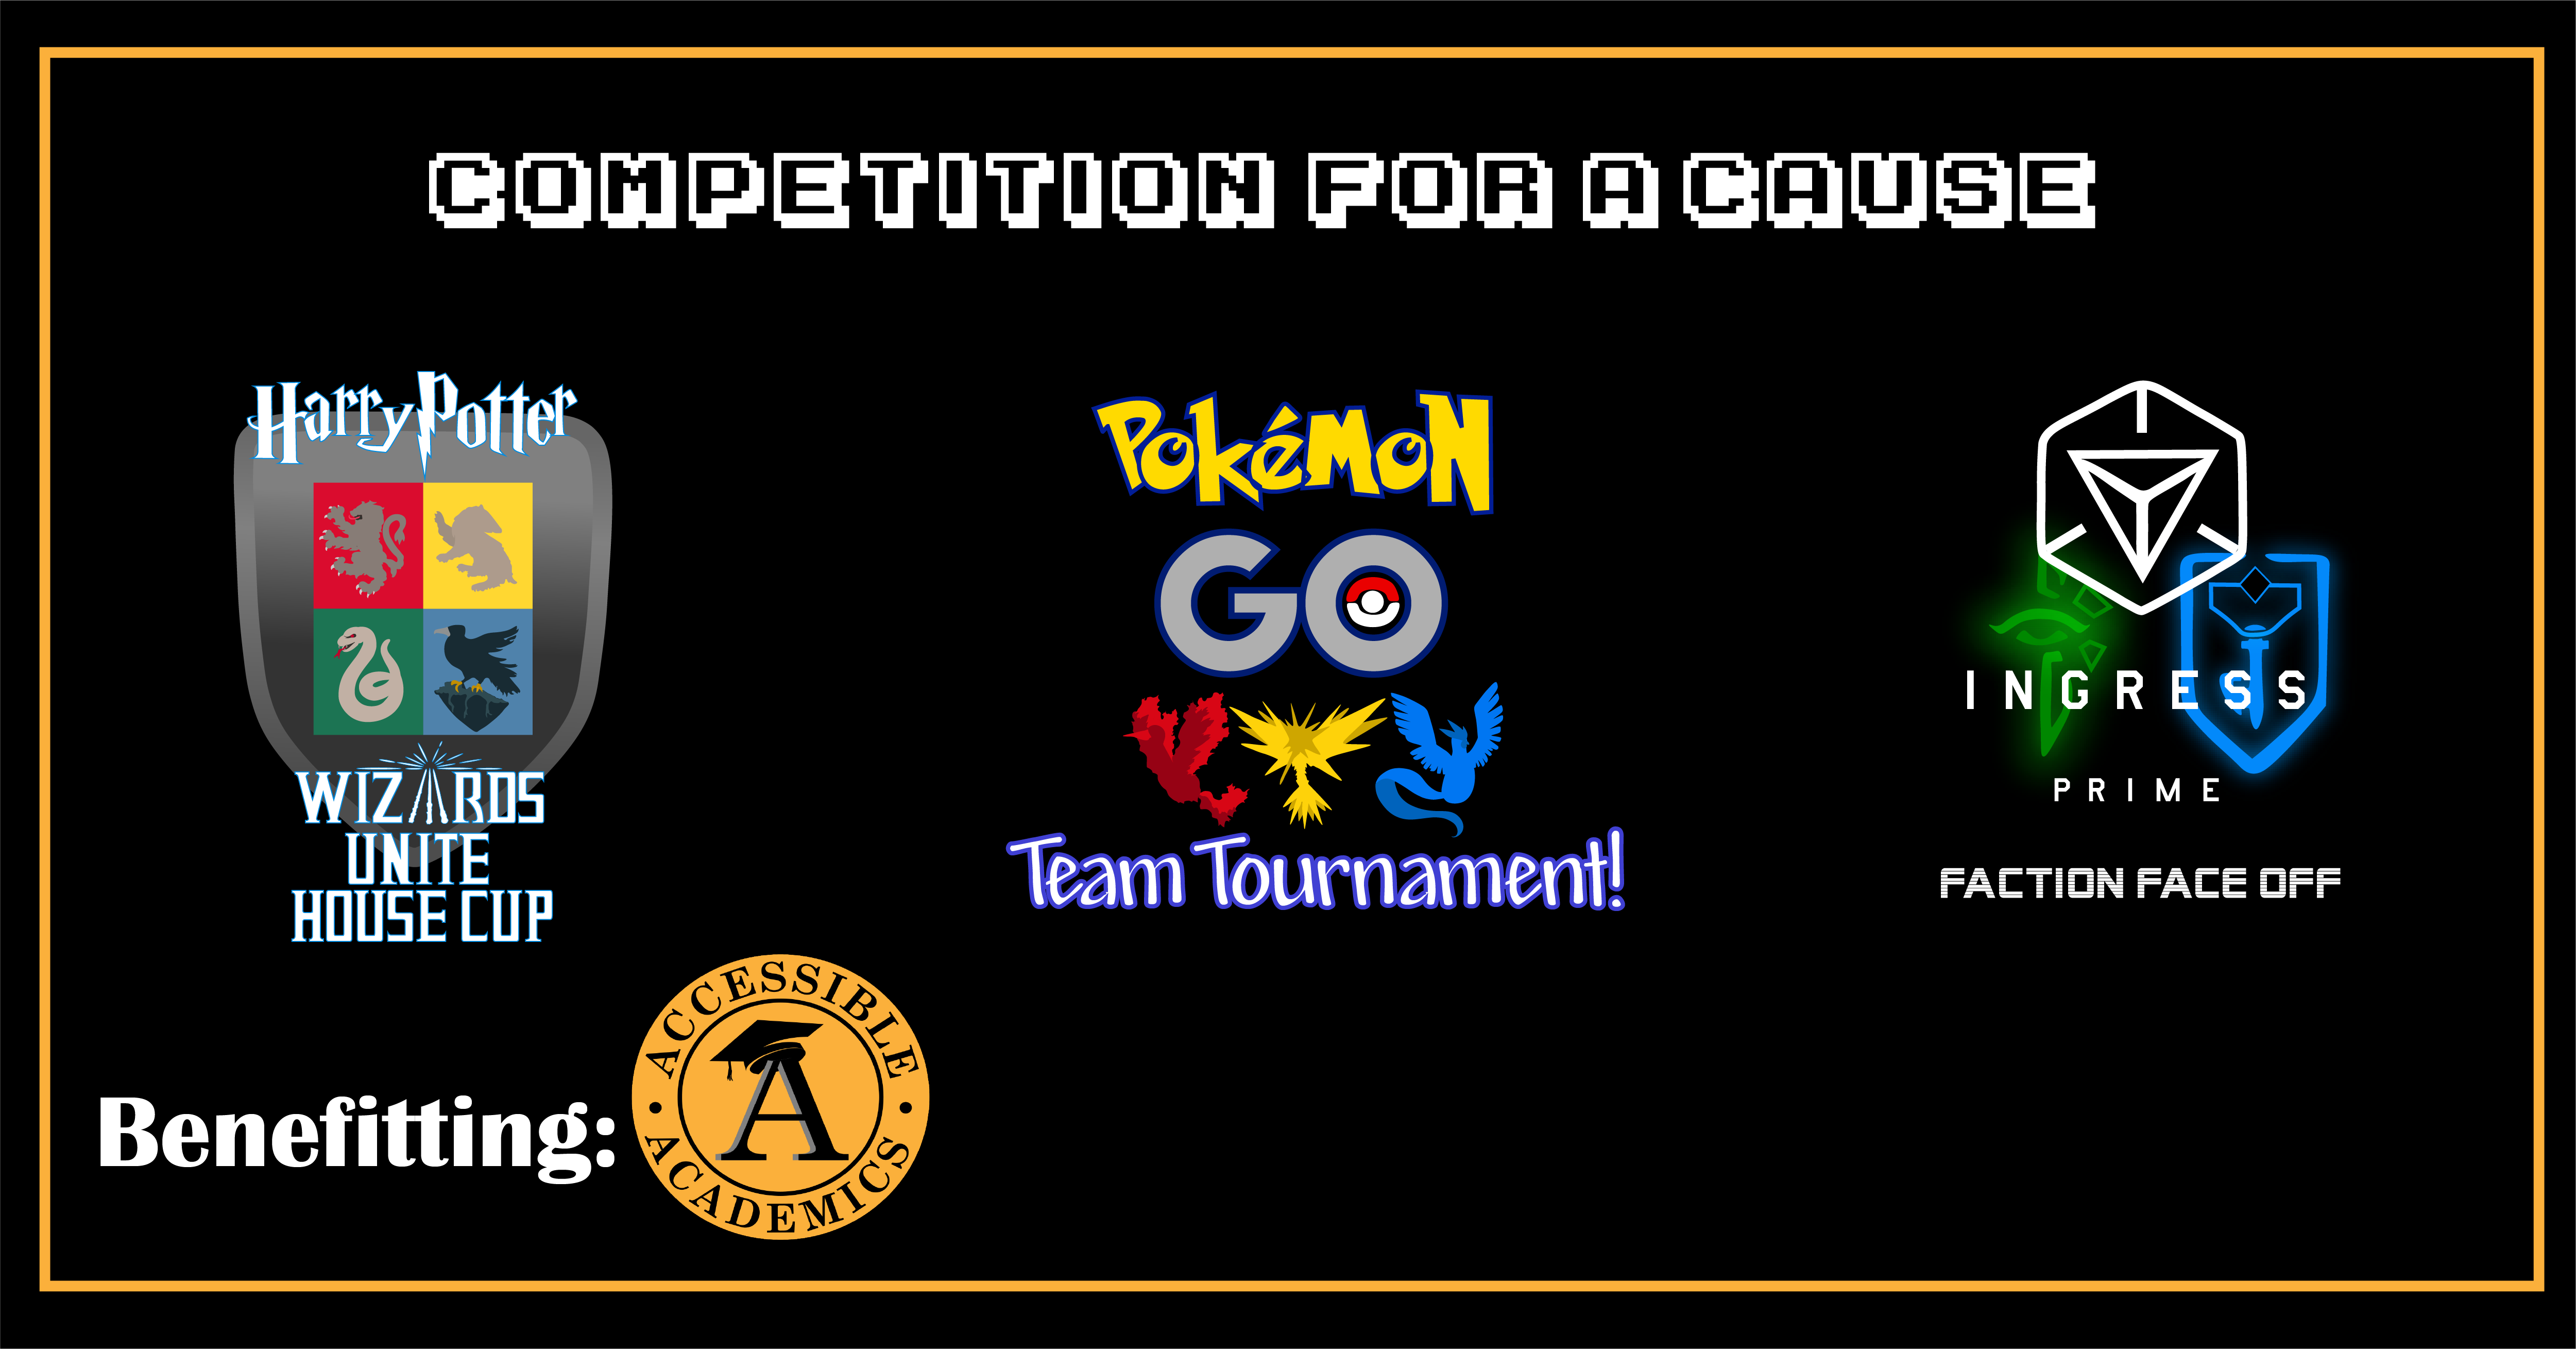 Competition for a Cause Benefiting Accessible Academics Harry Potter Wizards Unite Pokemon Go Team Tournament Ingress Prime Faction Face Off